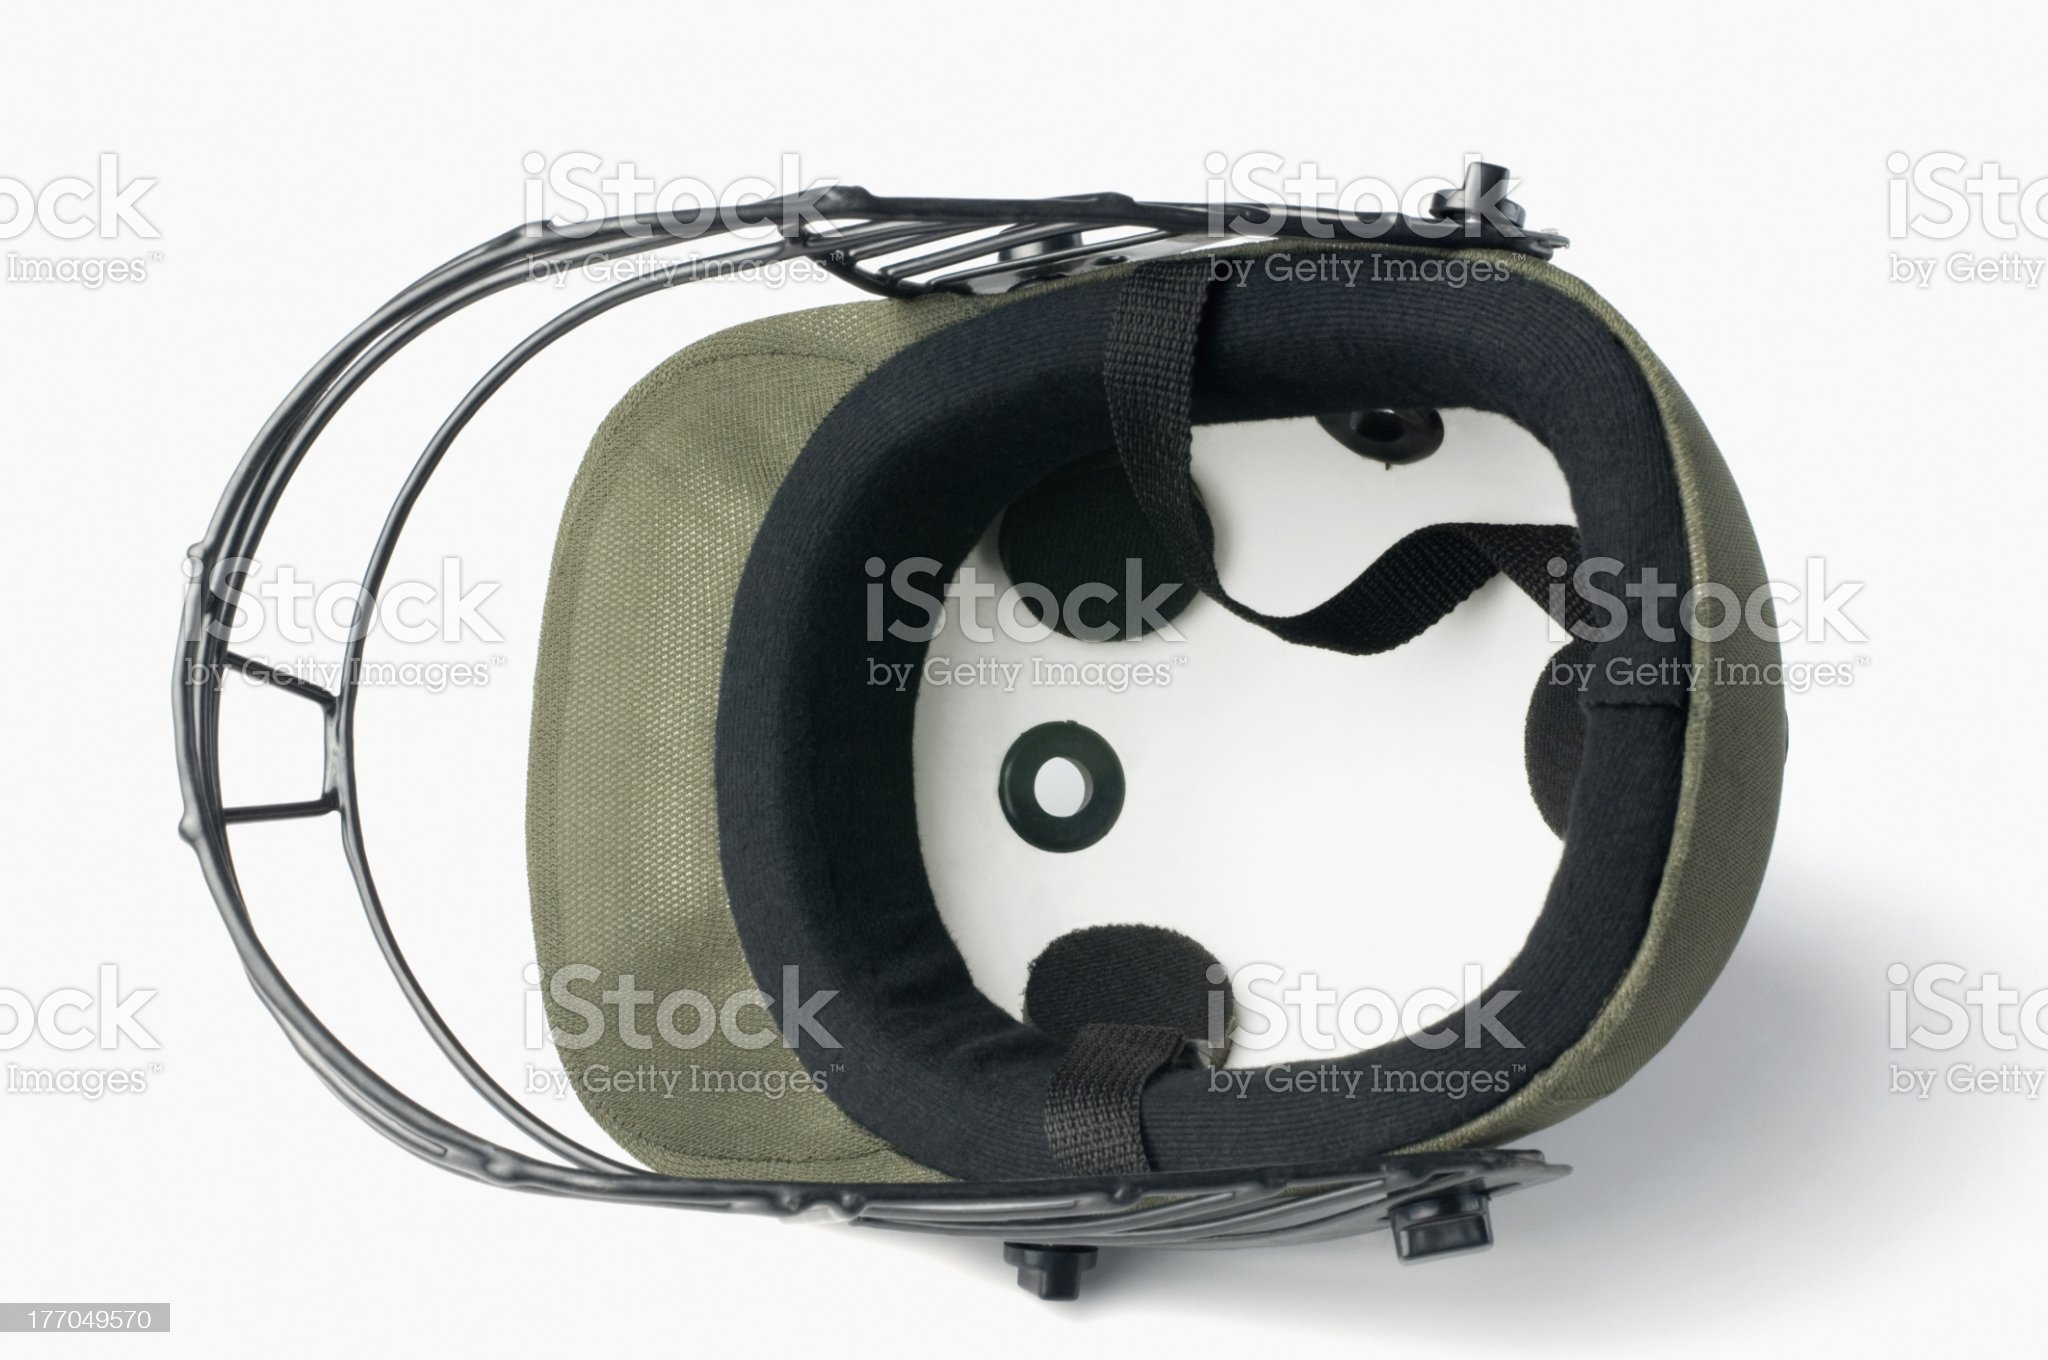 Close-up of a cricket helmet royalty-free stock photo